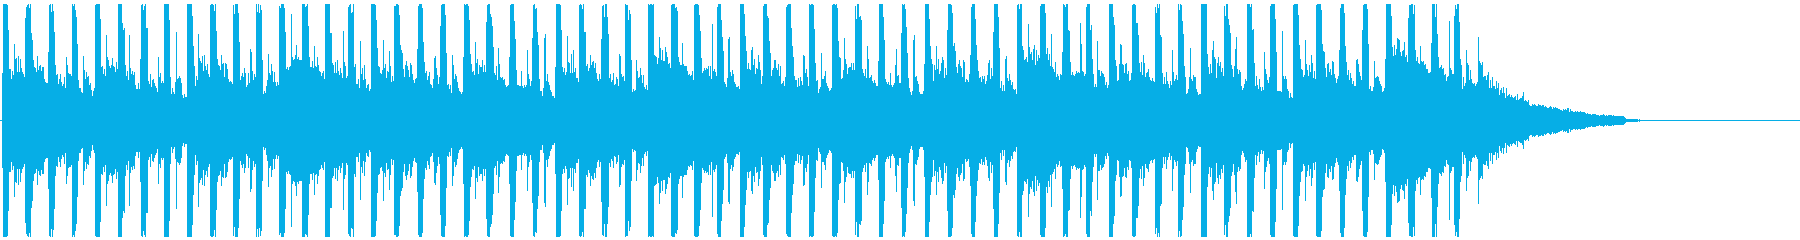 Announcement and corporate VP! Light, clean and secure S's reproduced waveform